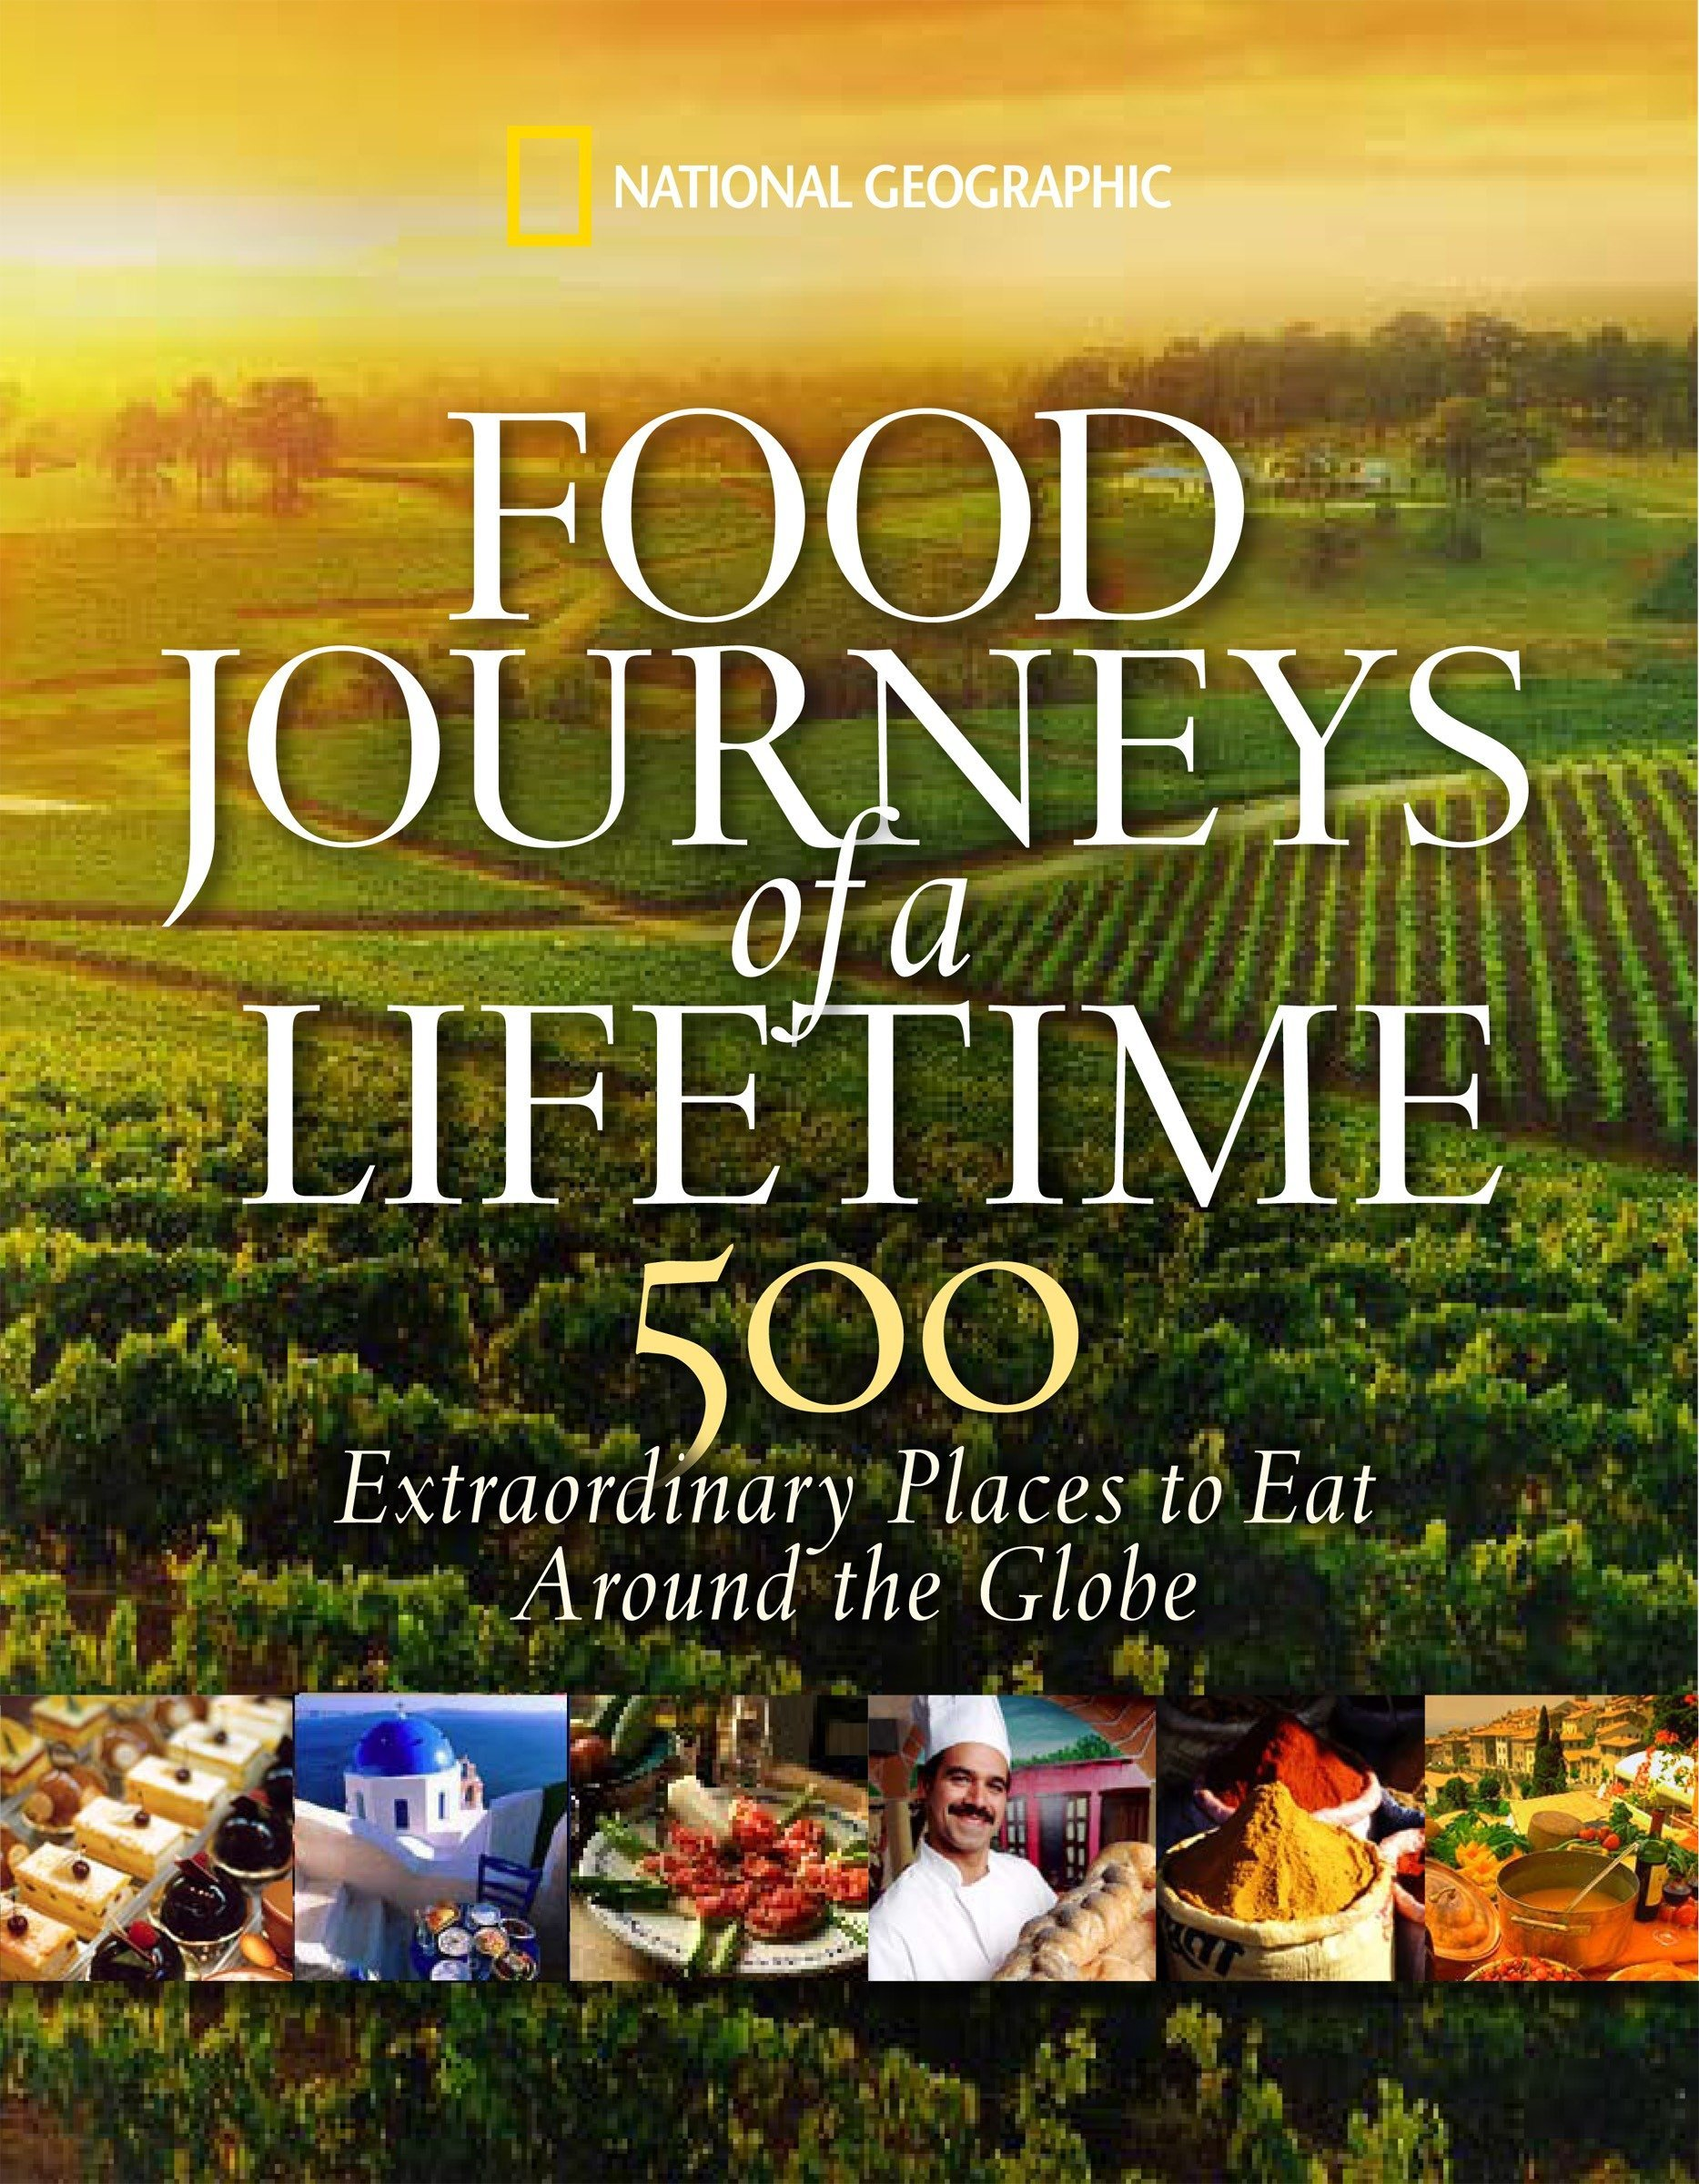 Food Journeys of a Lifetime: 500 Extraordinary Places to Eat Around the Globe PDF